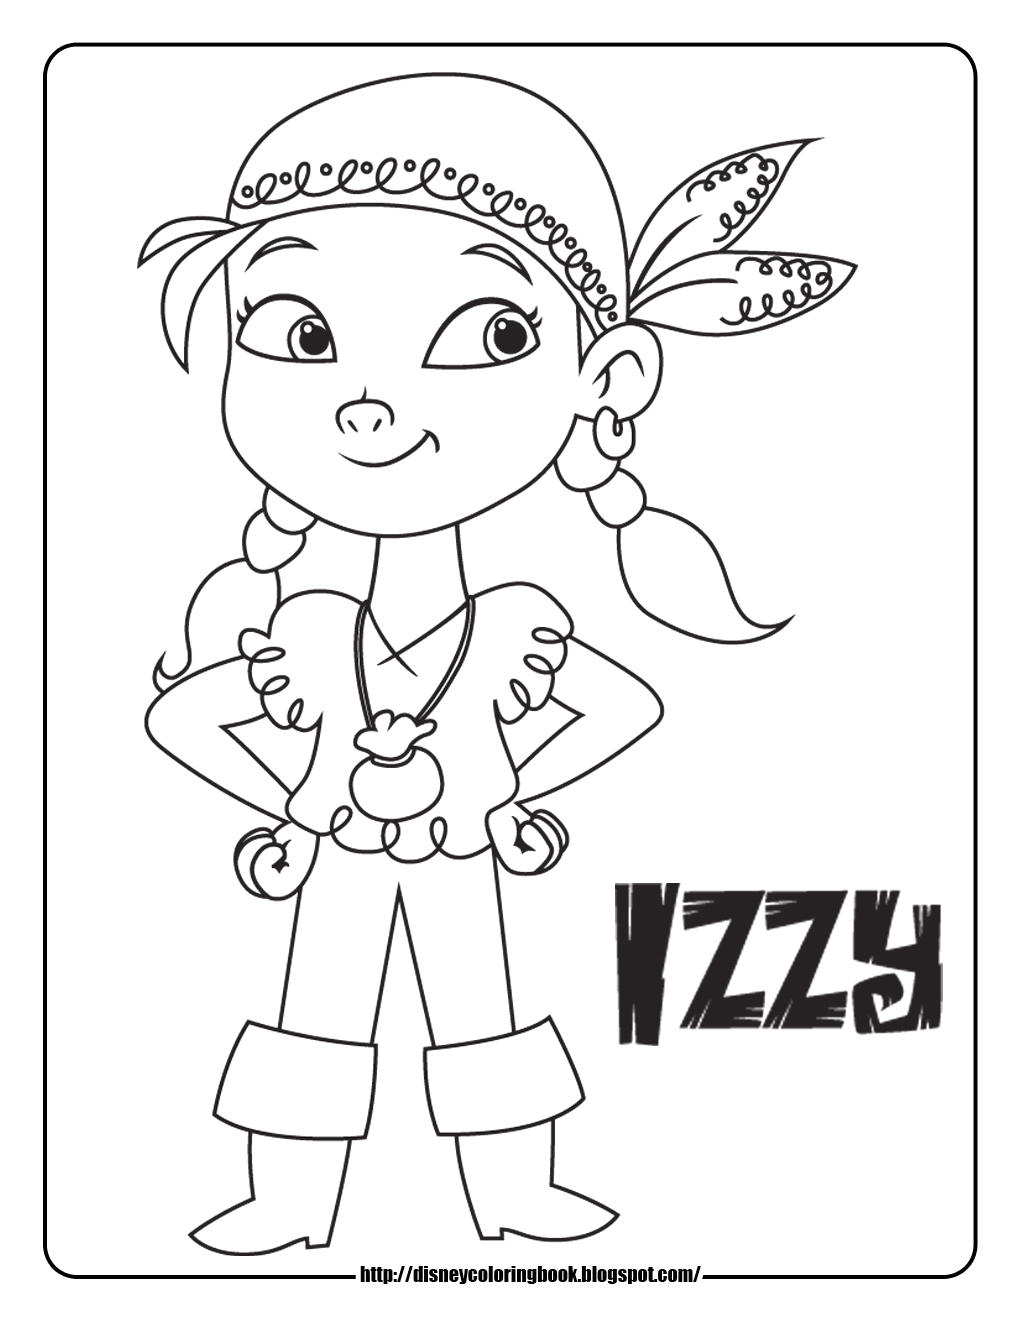 Captain Jake and the Neverland Pirates Coloring Pages Jake and the Neverland Pirates 1 Free Disney Coloring